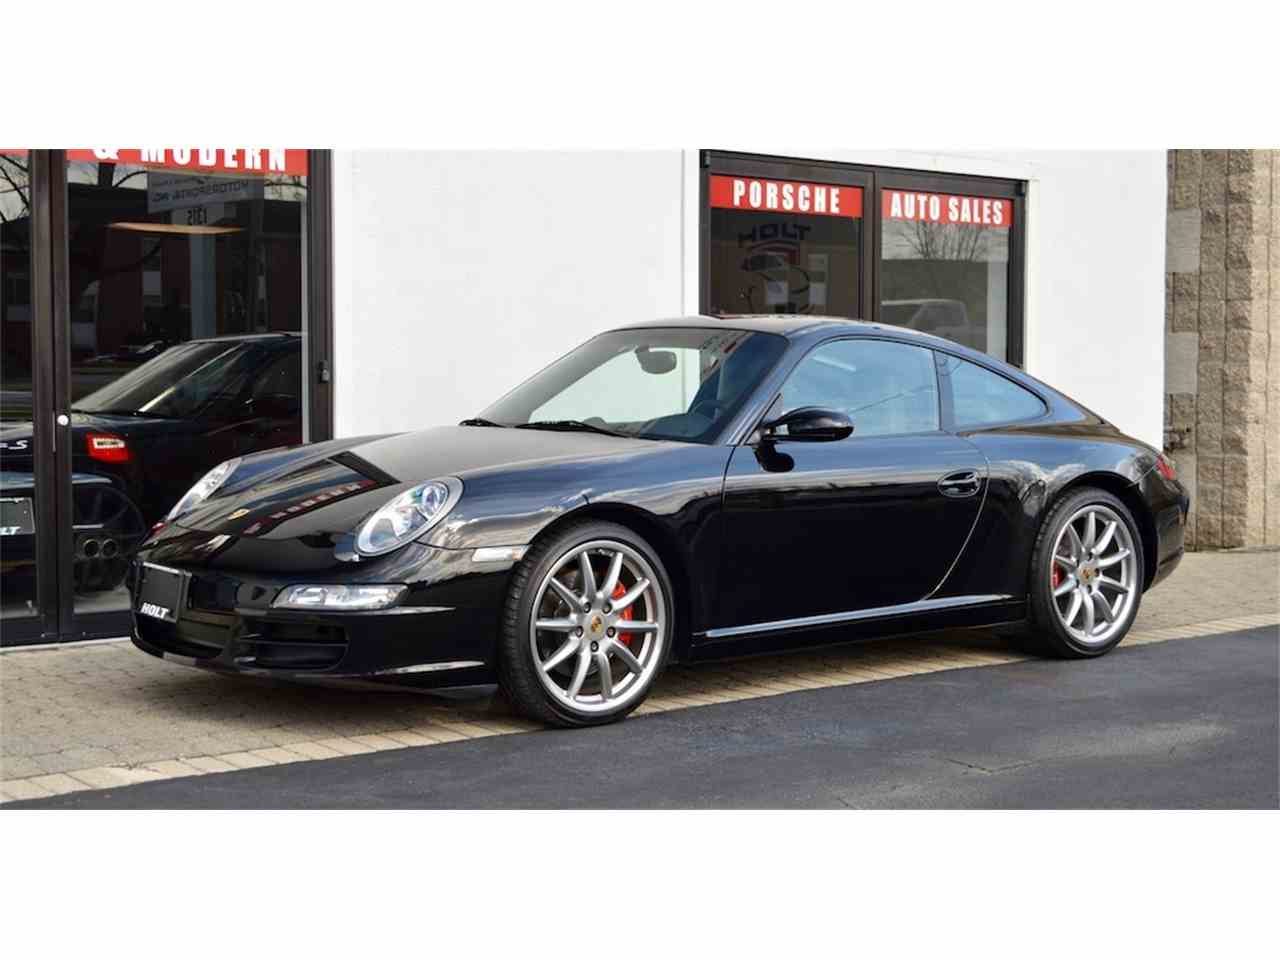 2008 Porsche Carrera S 997 Coupe For Sale Classiccars Com Cc 966656